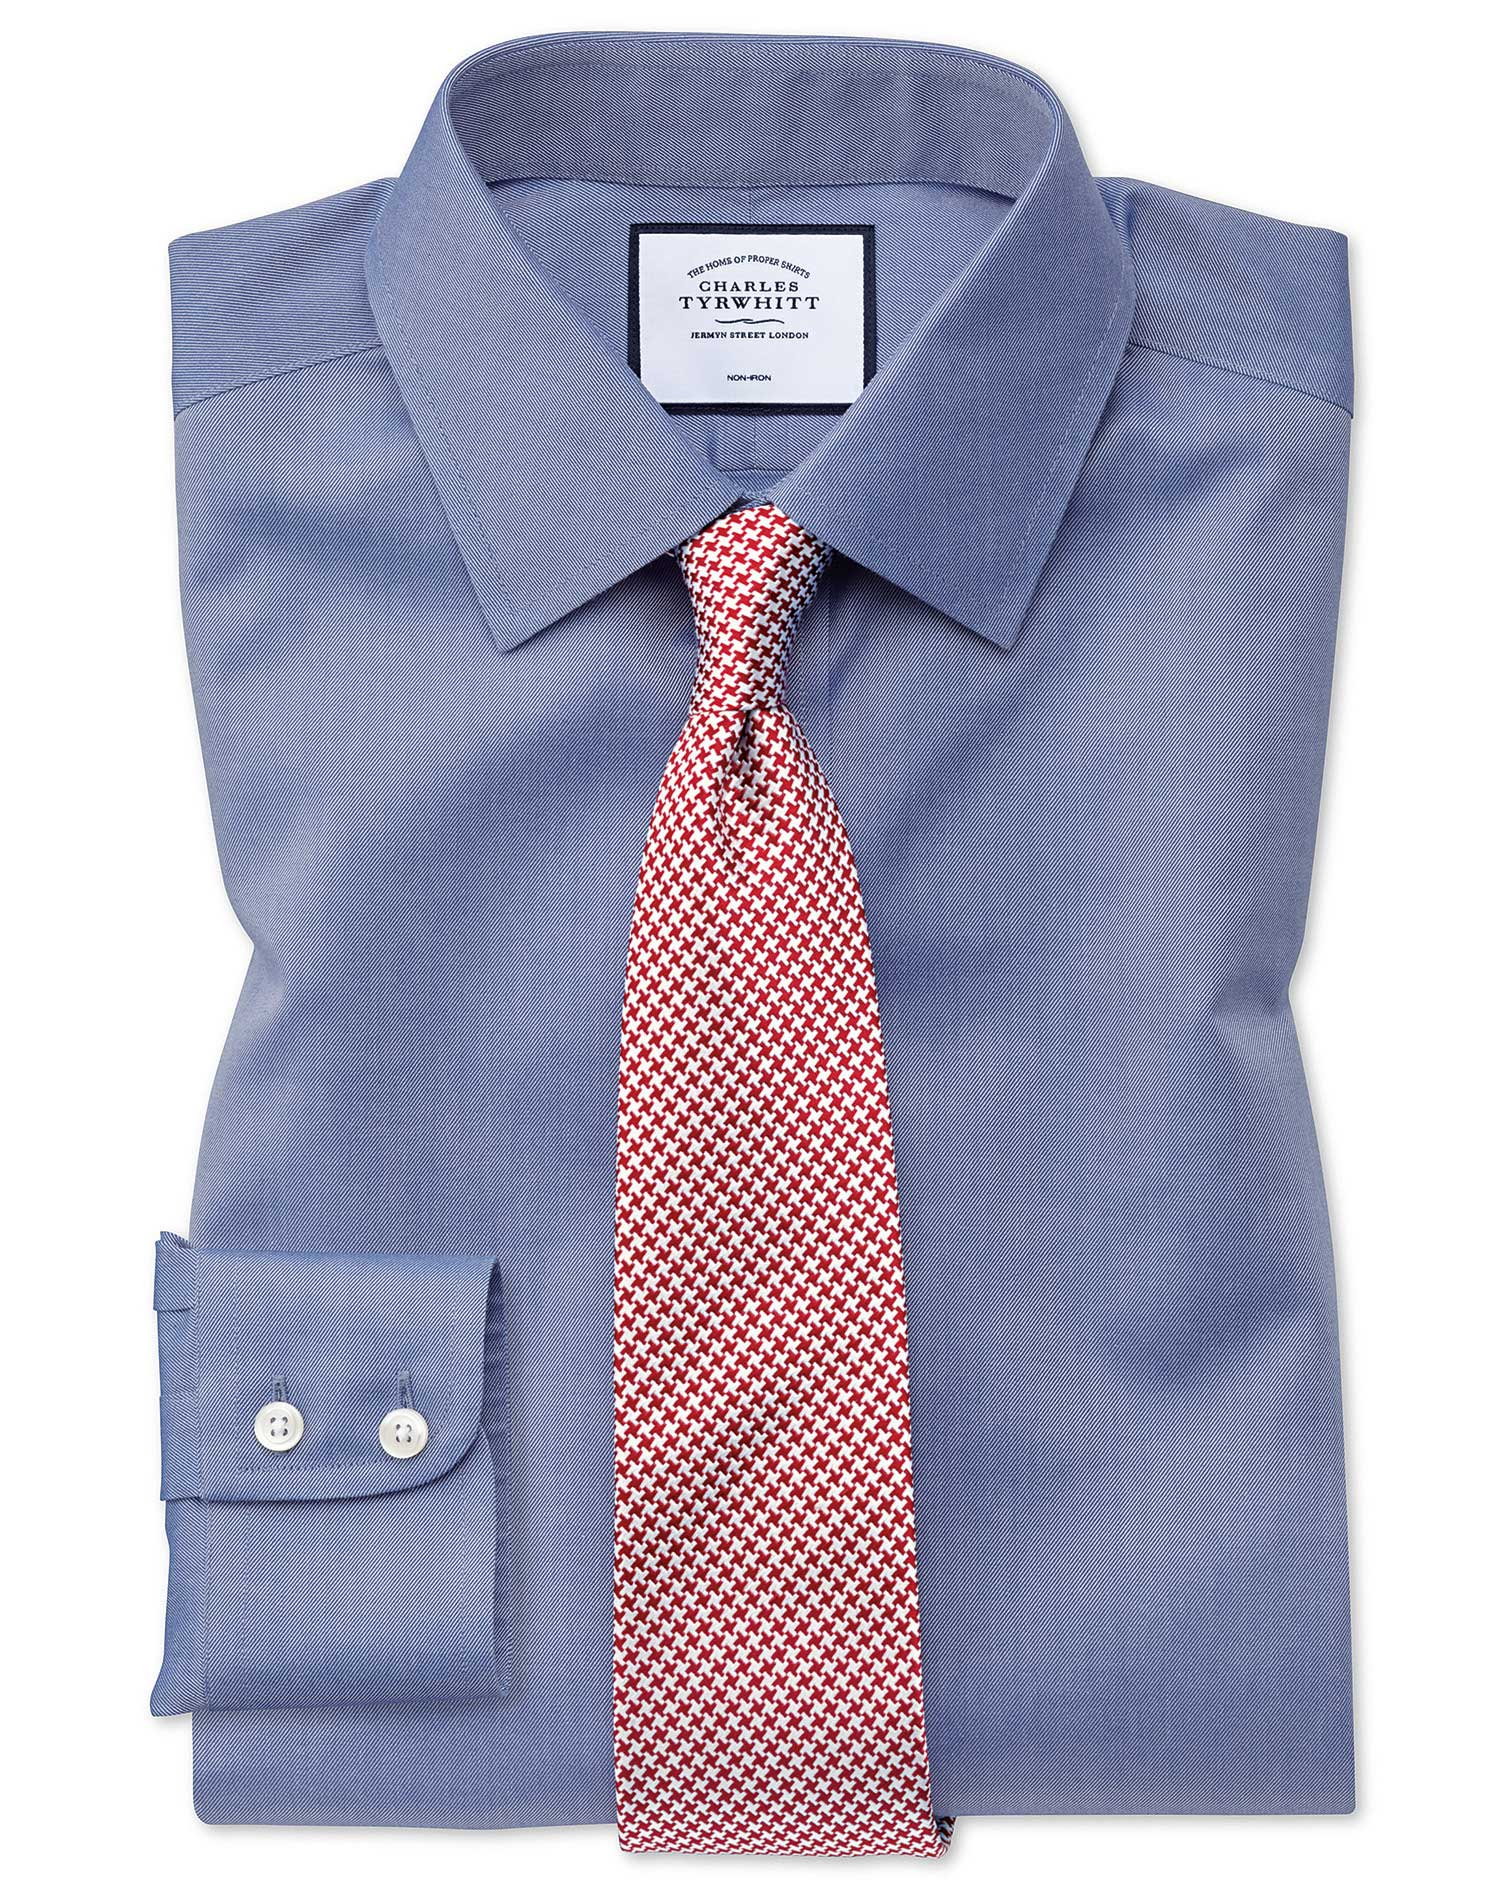 Classic Fit Mid-Blue Non-Iron Twill Cotton Formal Shirt by Charles Tyrwhitt